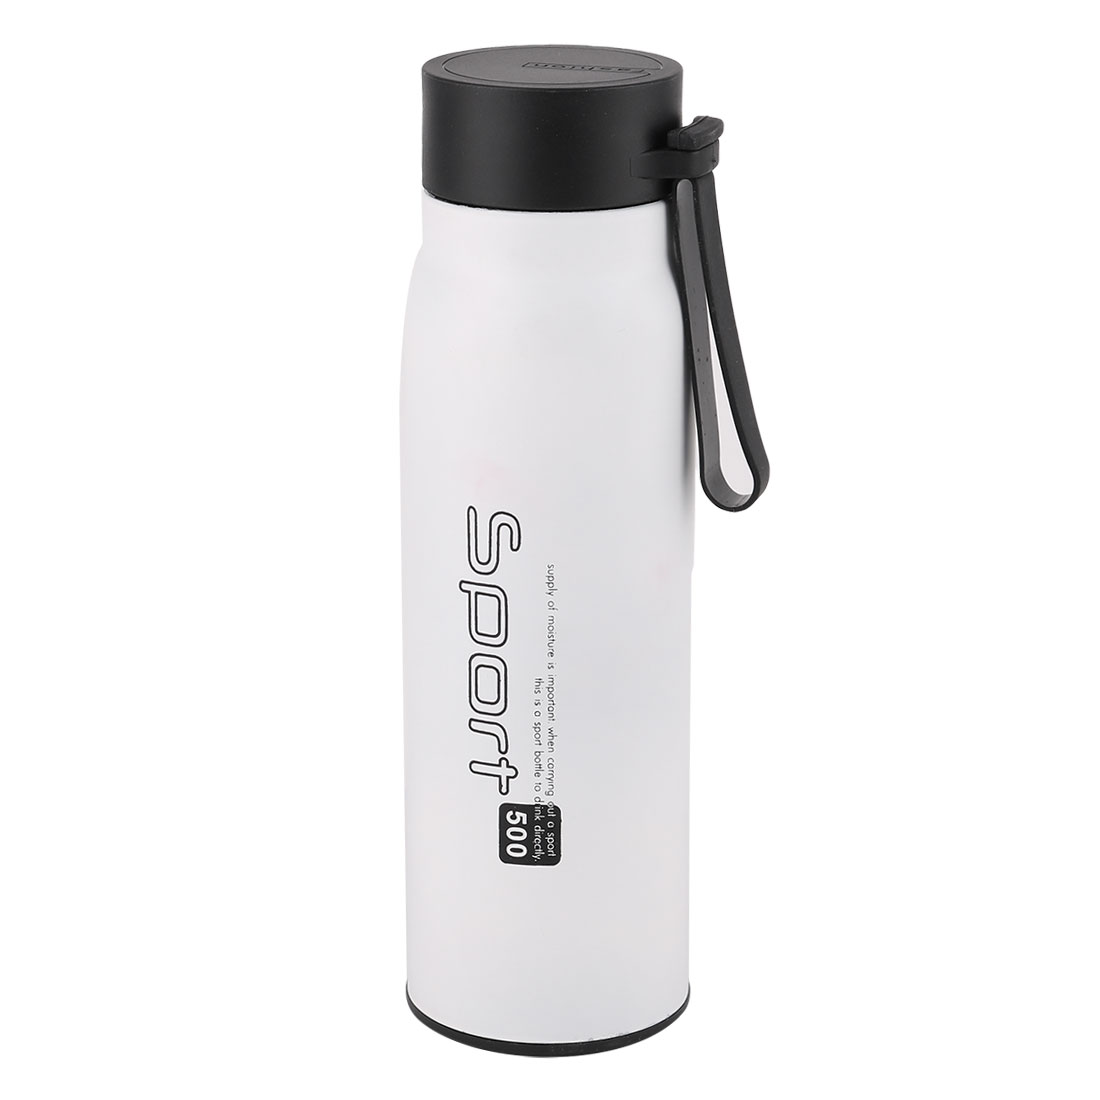 Household Stainless Steel Temperature Keeping Water Cup Vacuum Thermo Bottle White 500ml Capacity